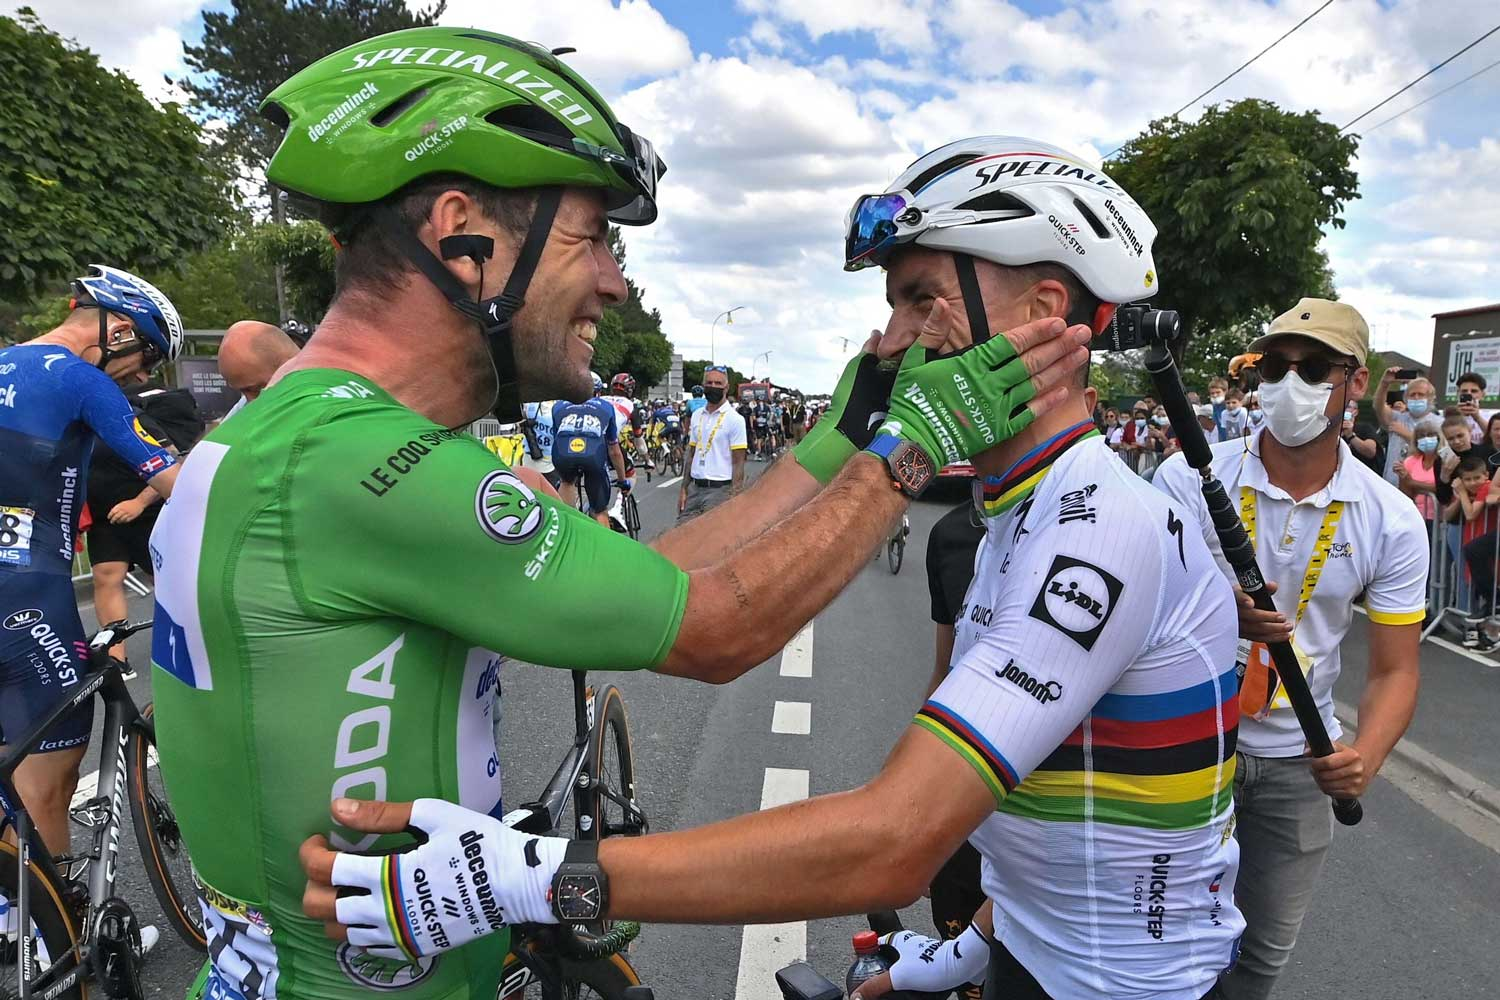 Britain's Mark Cavendish, wearing the best sprinter's green, celebrates with France's Julian Alaphilippe after winning the sixth stage of the Tour de France cycling race over 160.6 kilometers (99.8 miles) with start in Tours and finish in Chateauroux, France, Thursday, July 1, 2021. (David Stockman, Pool Photo via AP